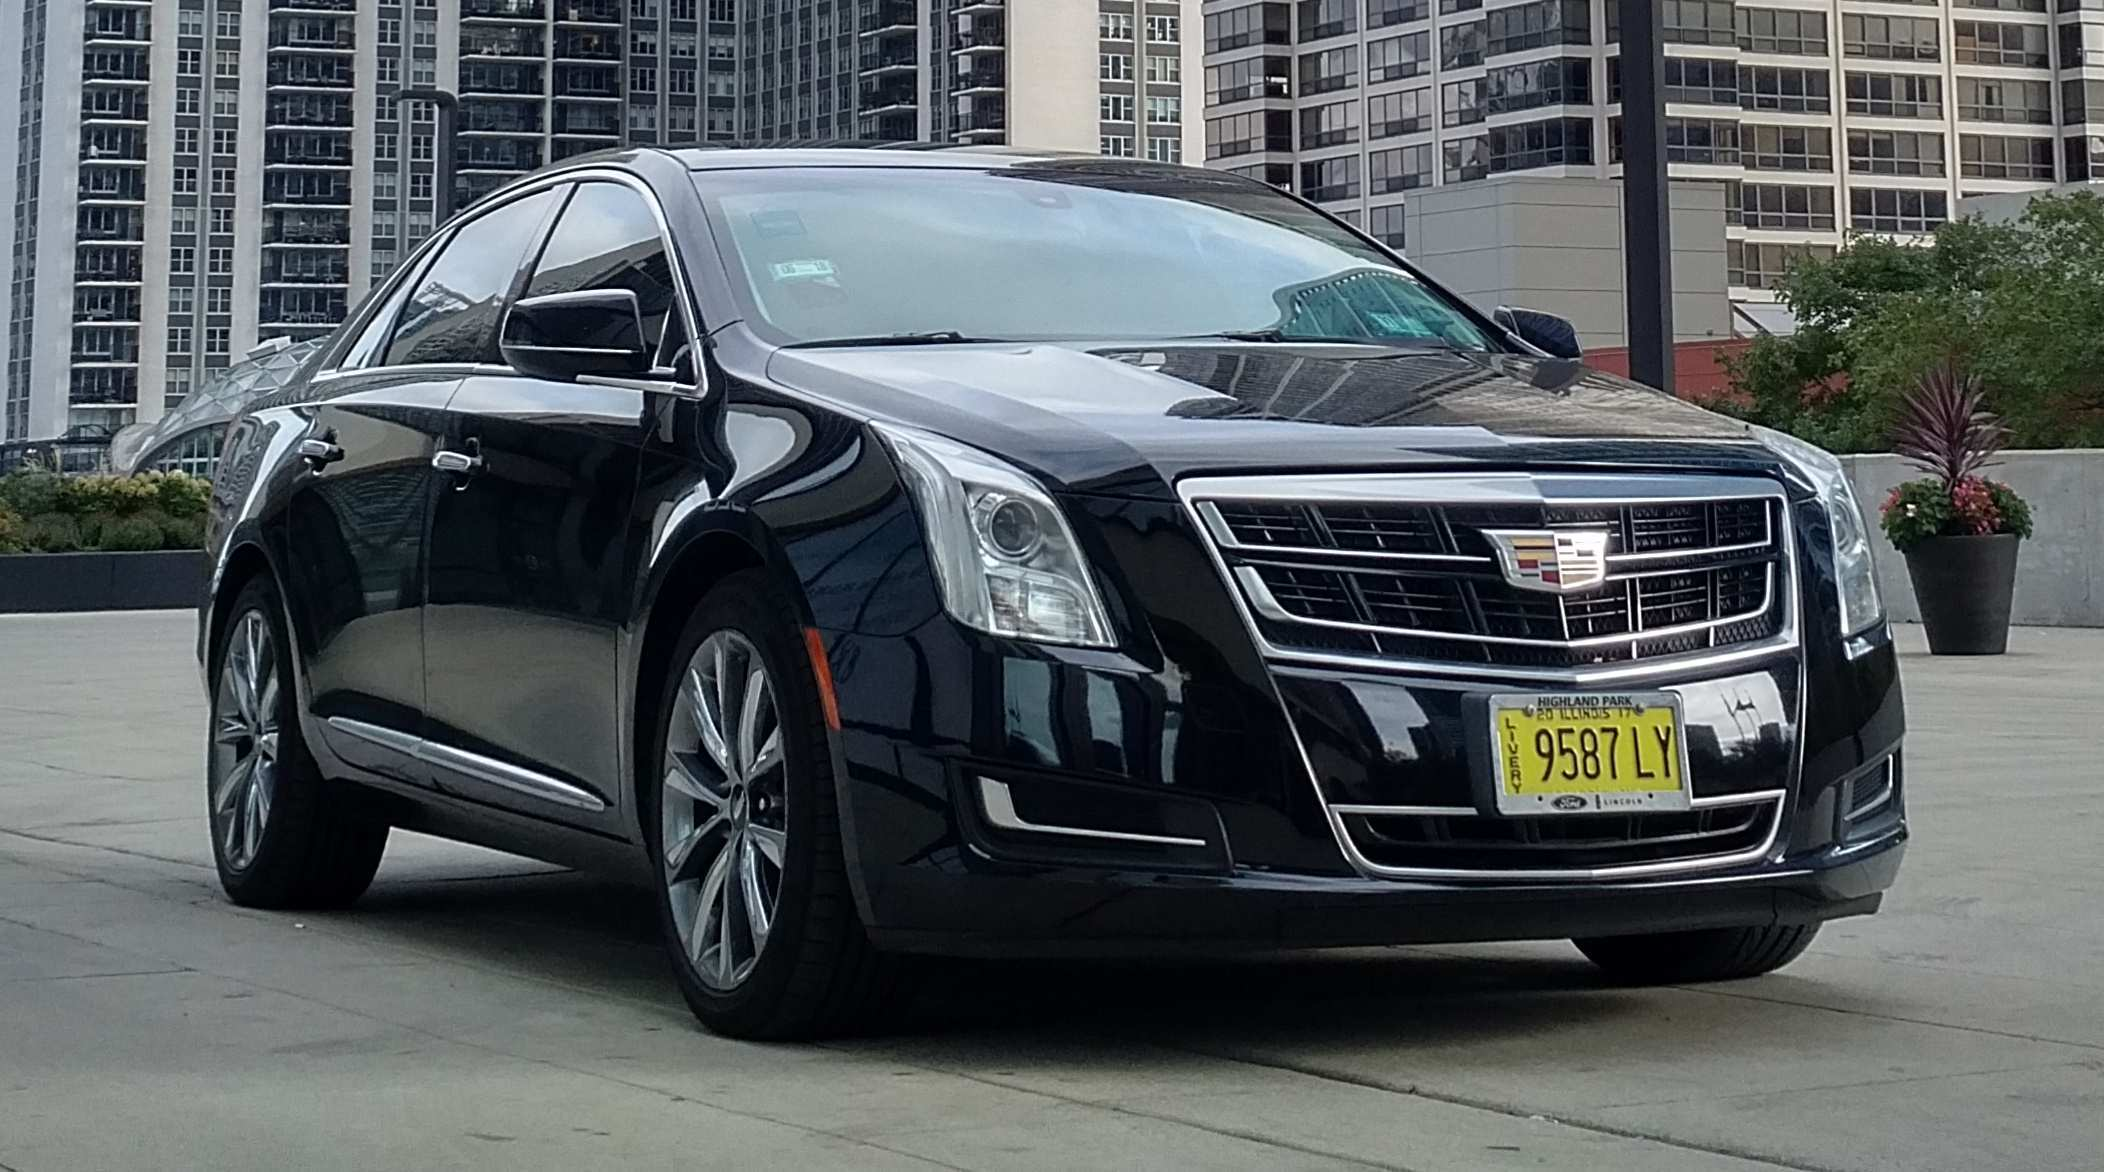 18 Best 2020 Candillac Xts Photos